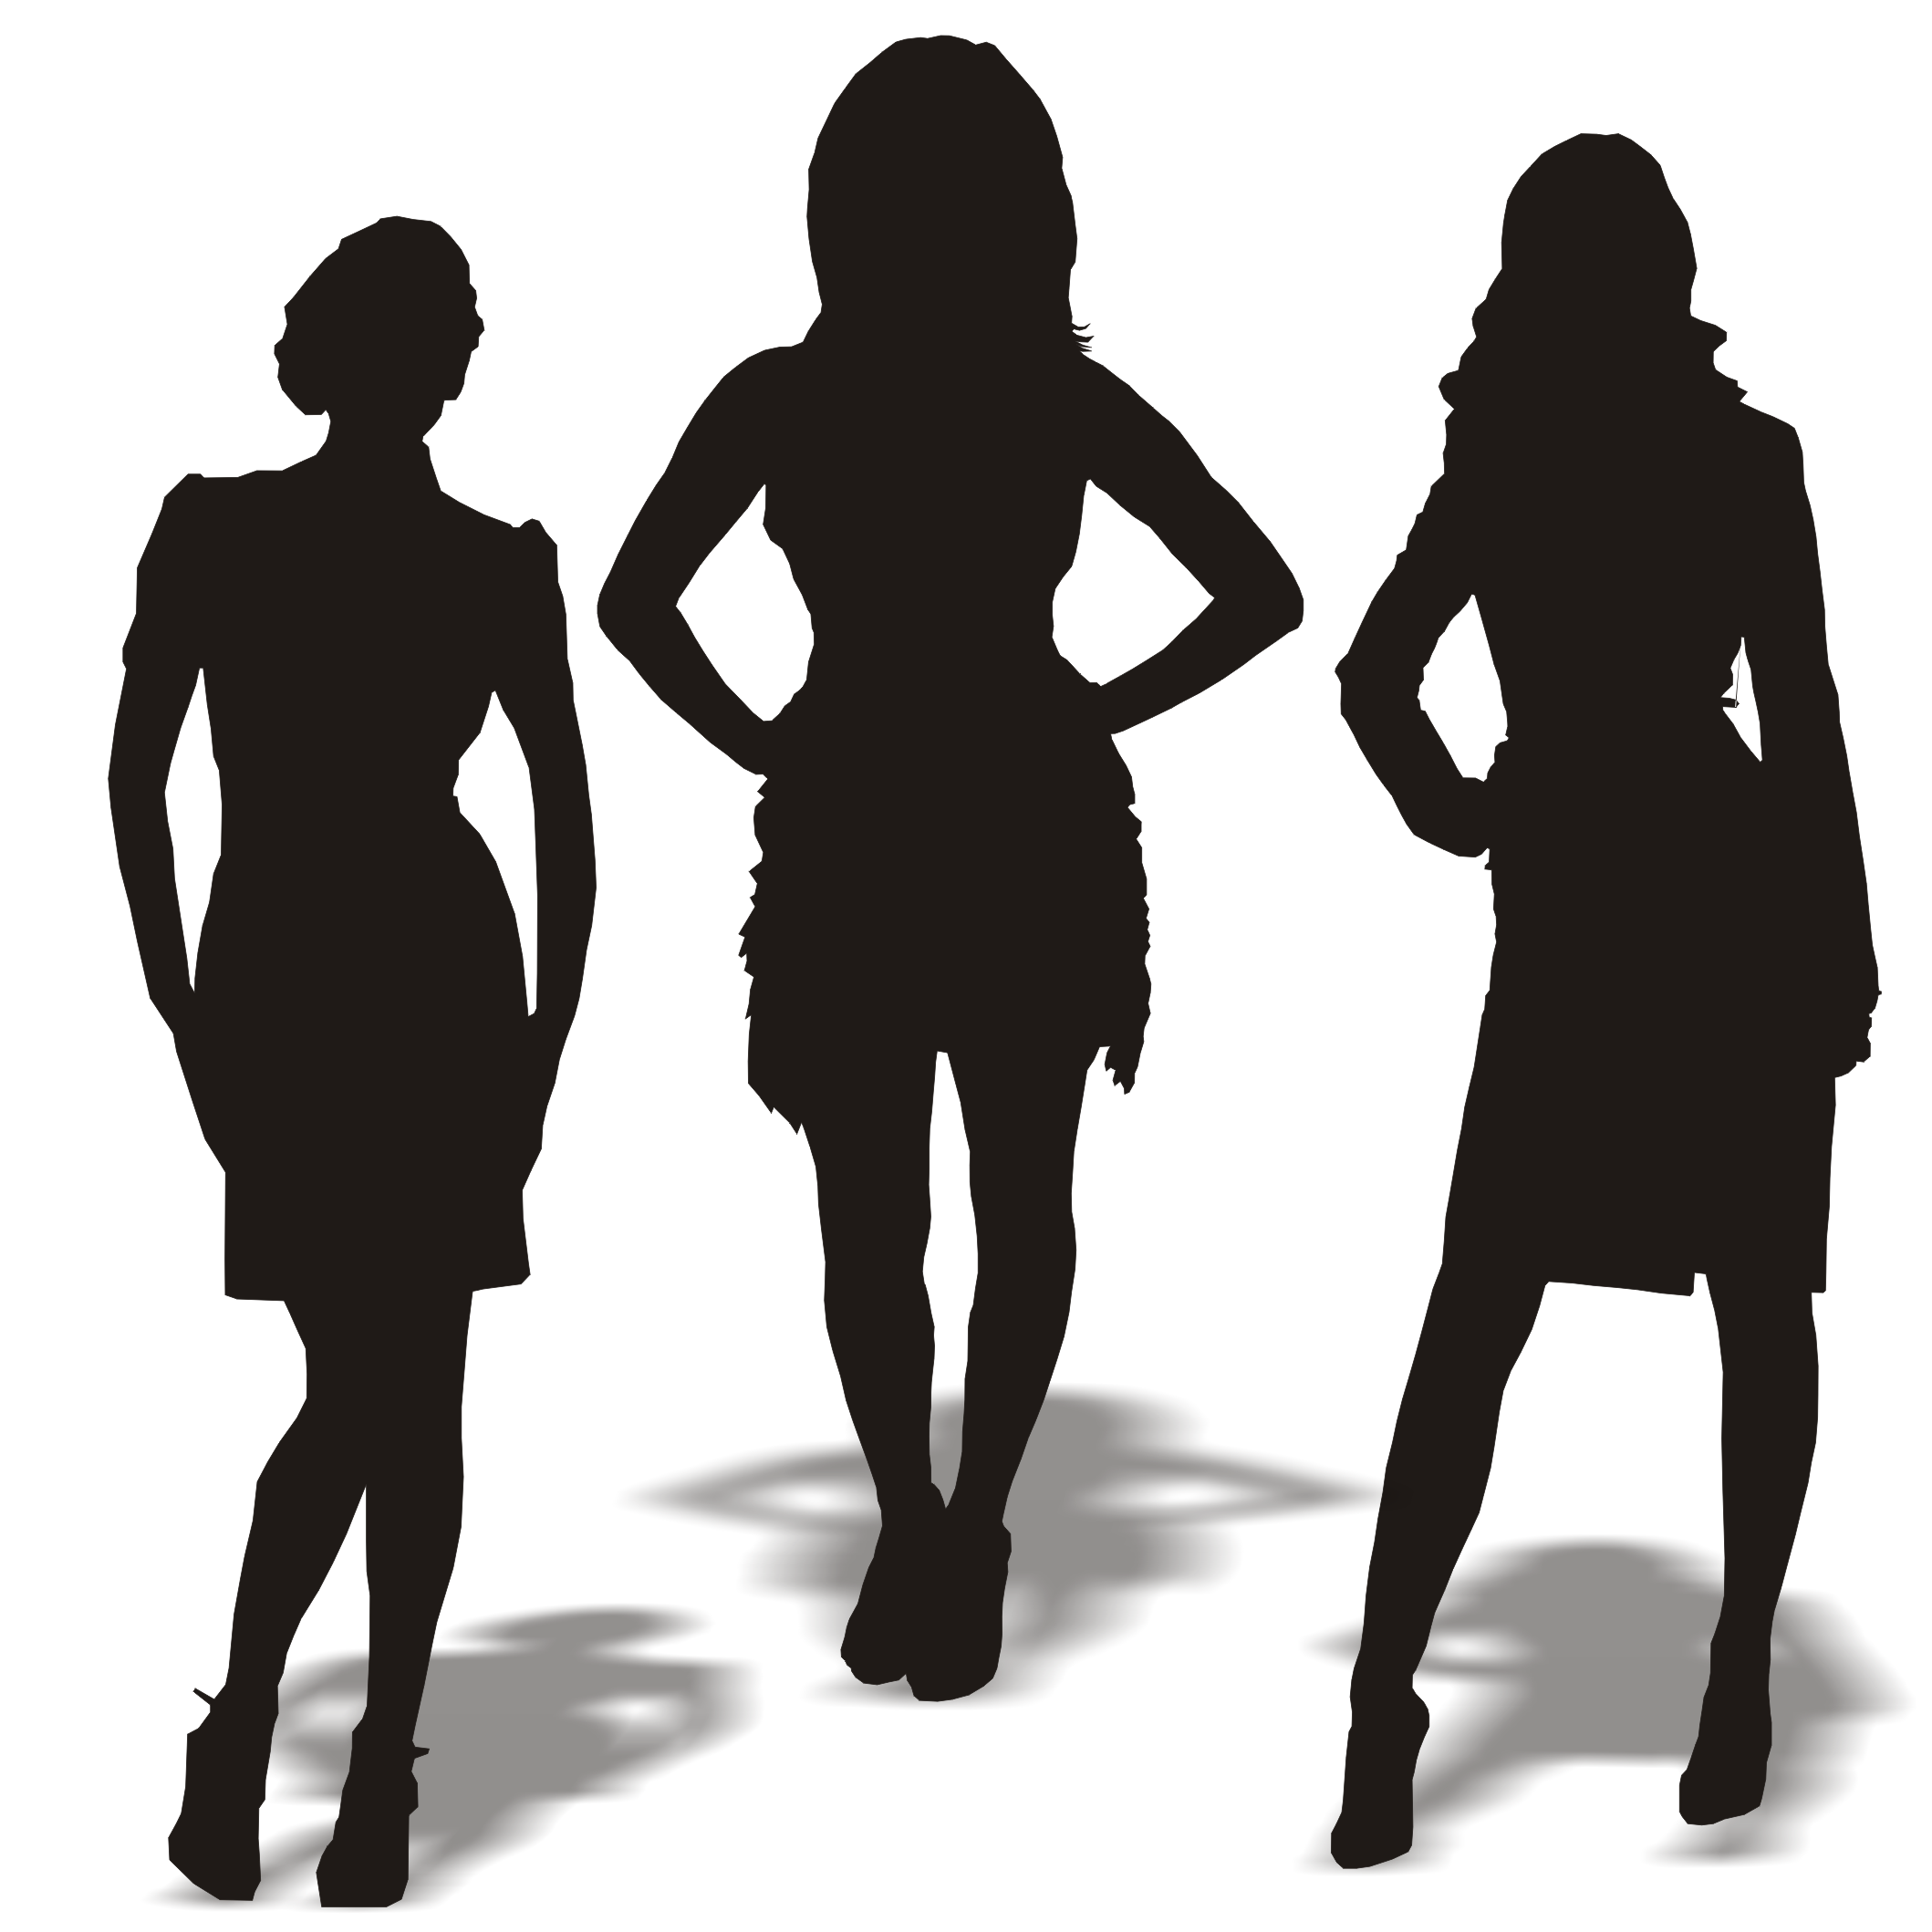 business woman silhouette businesswoman silhouette women free picture business woman silhouette business